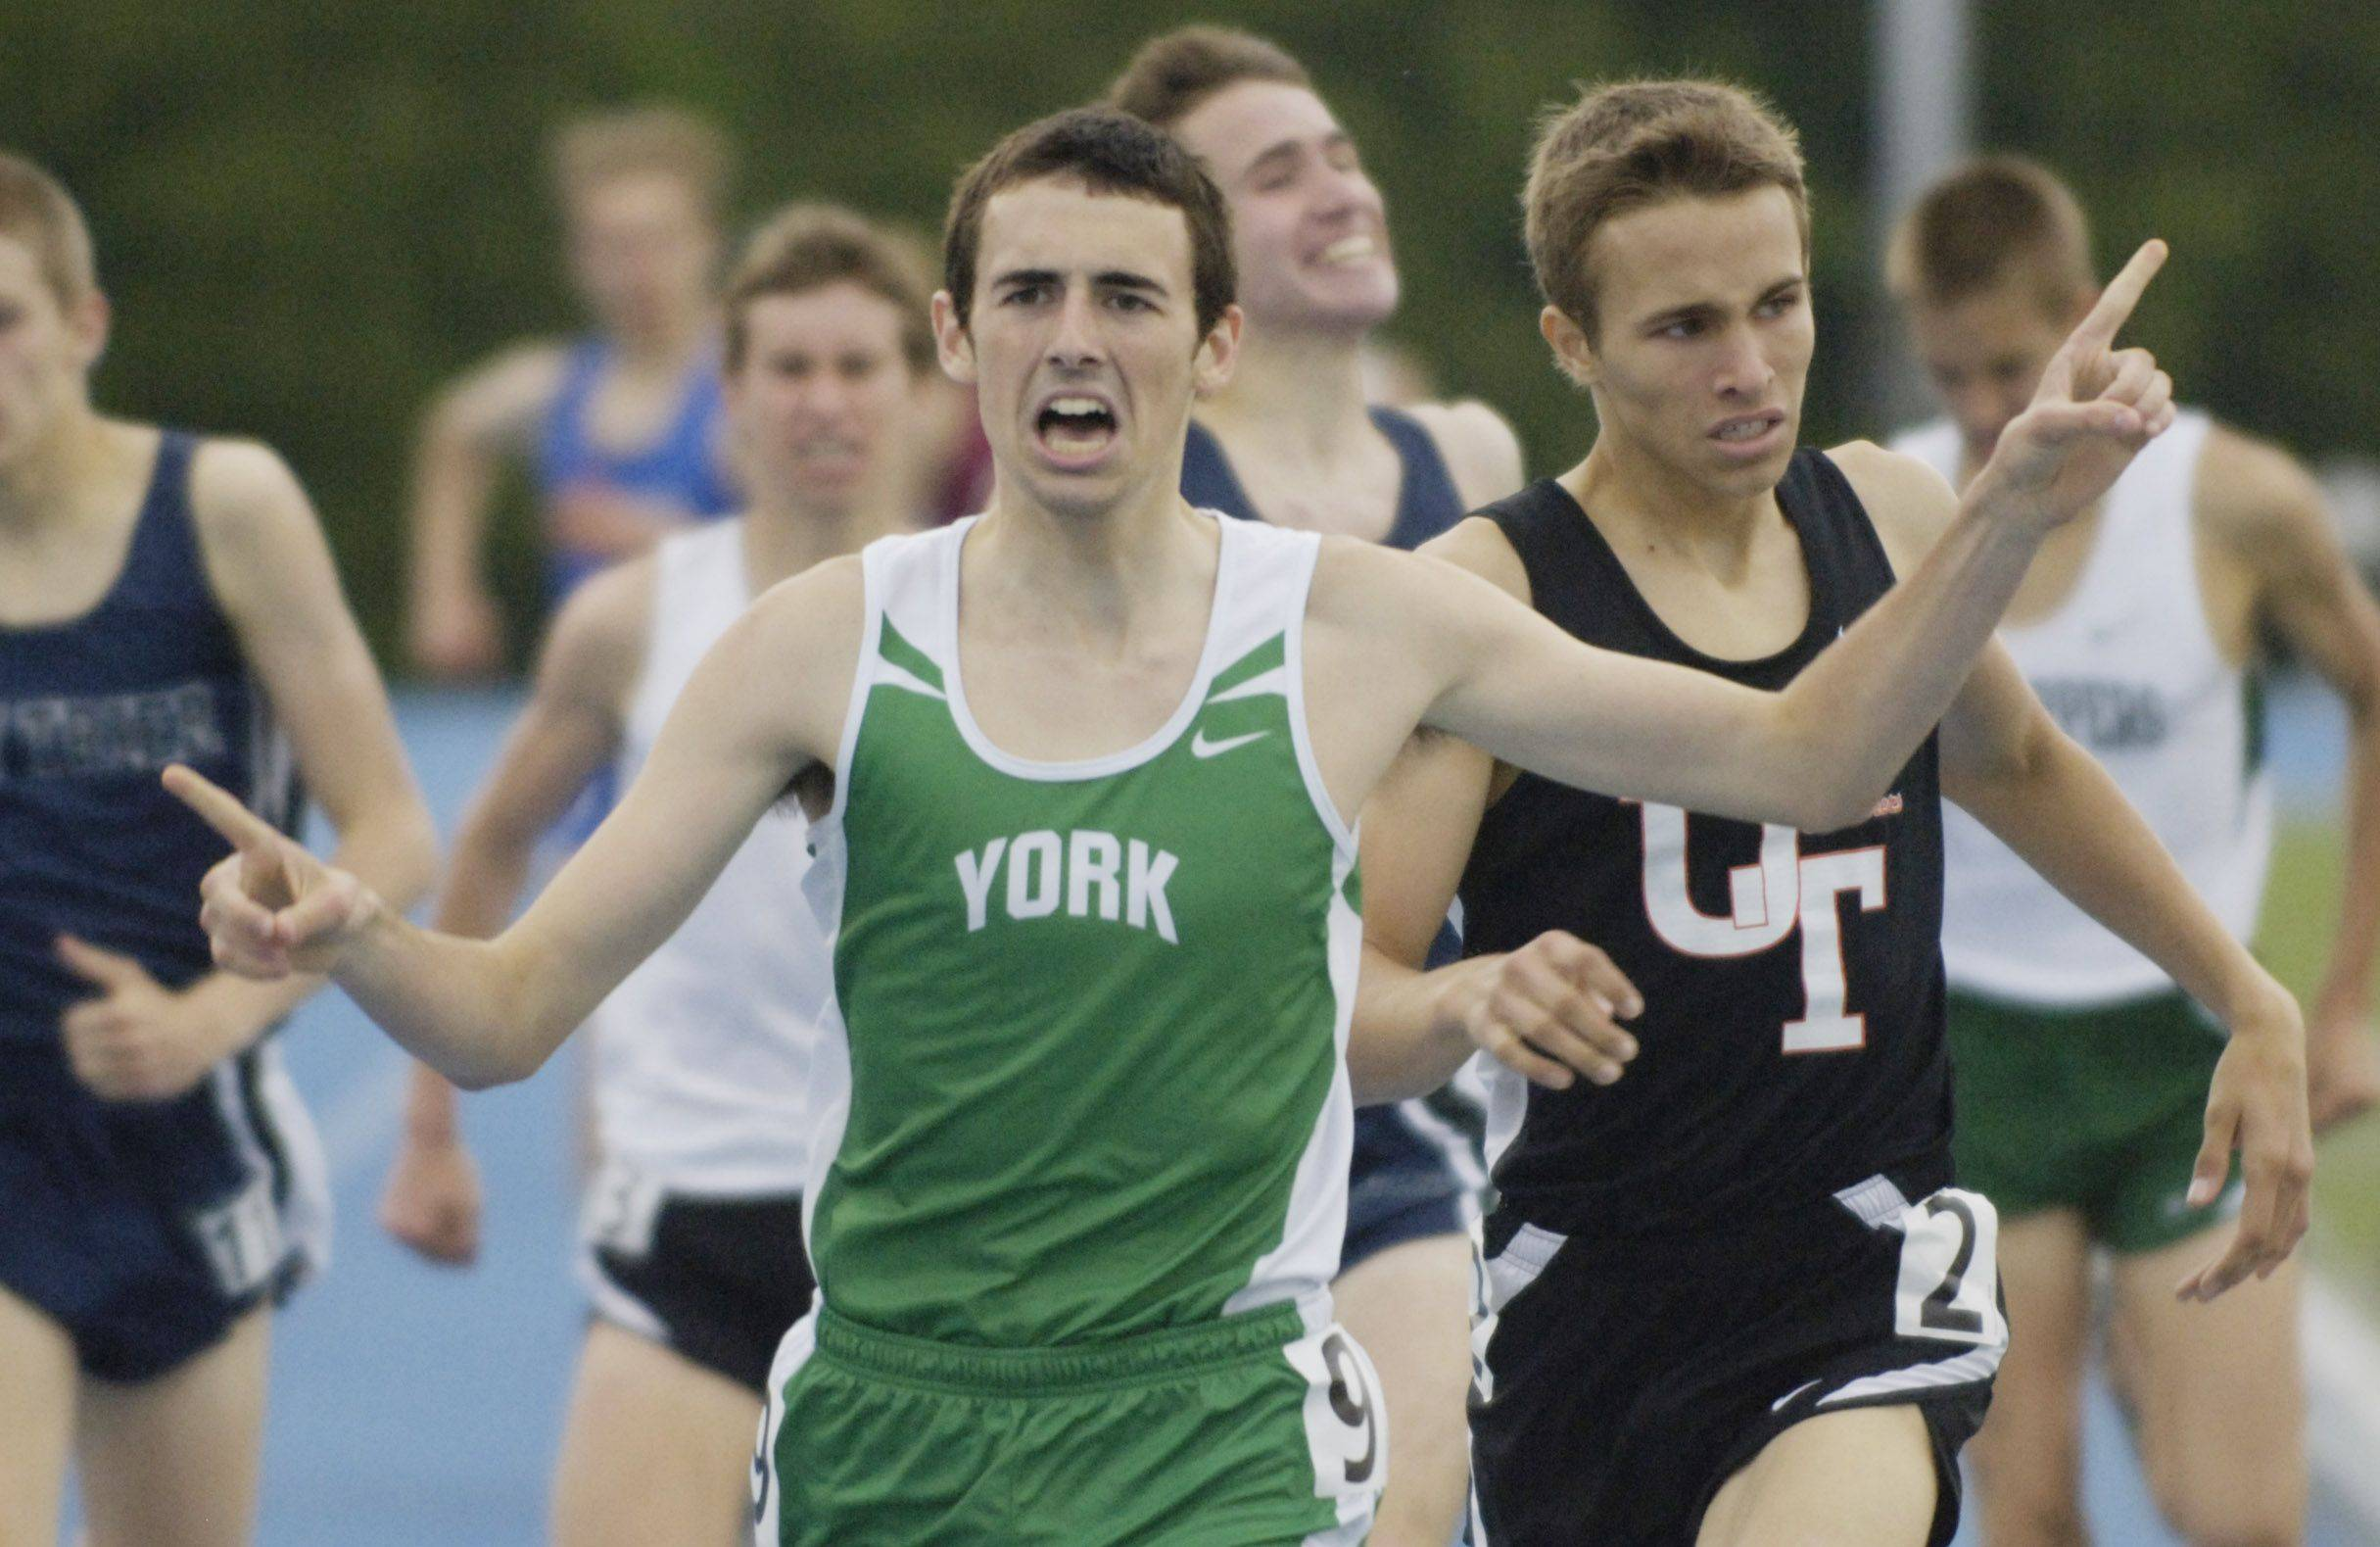 Yorks' Jack Driggs wins the class 3A 1,600-meter run during the boys state track finals in Charleston Saturday.